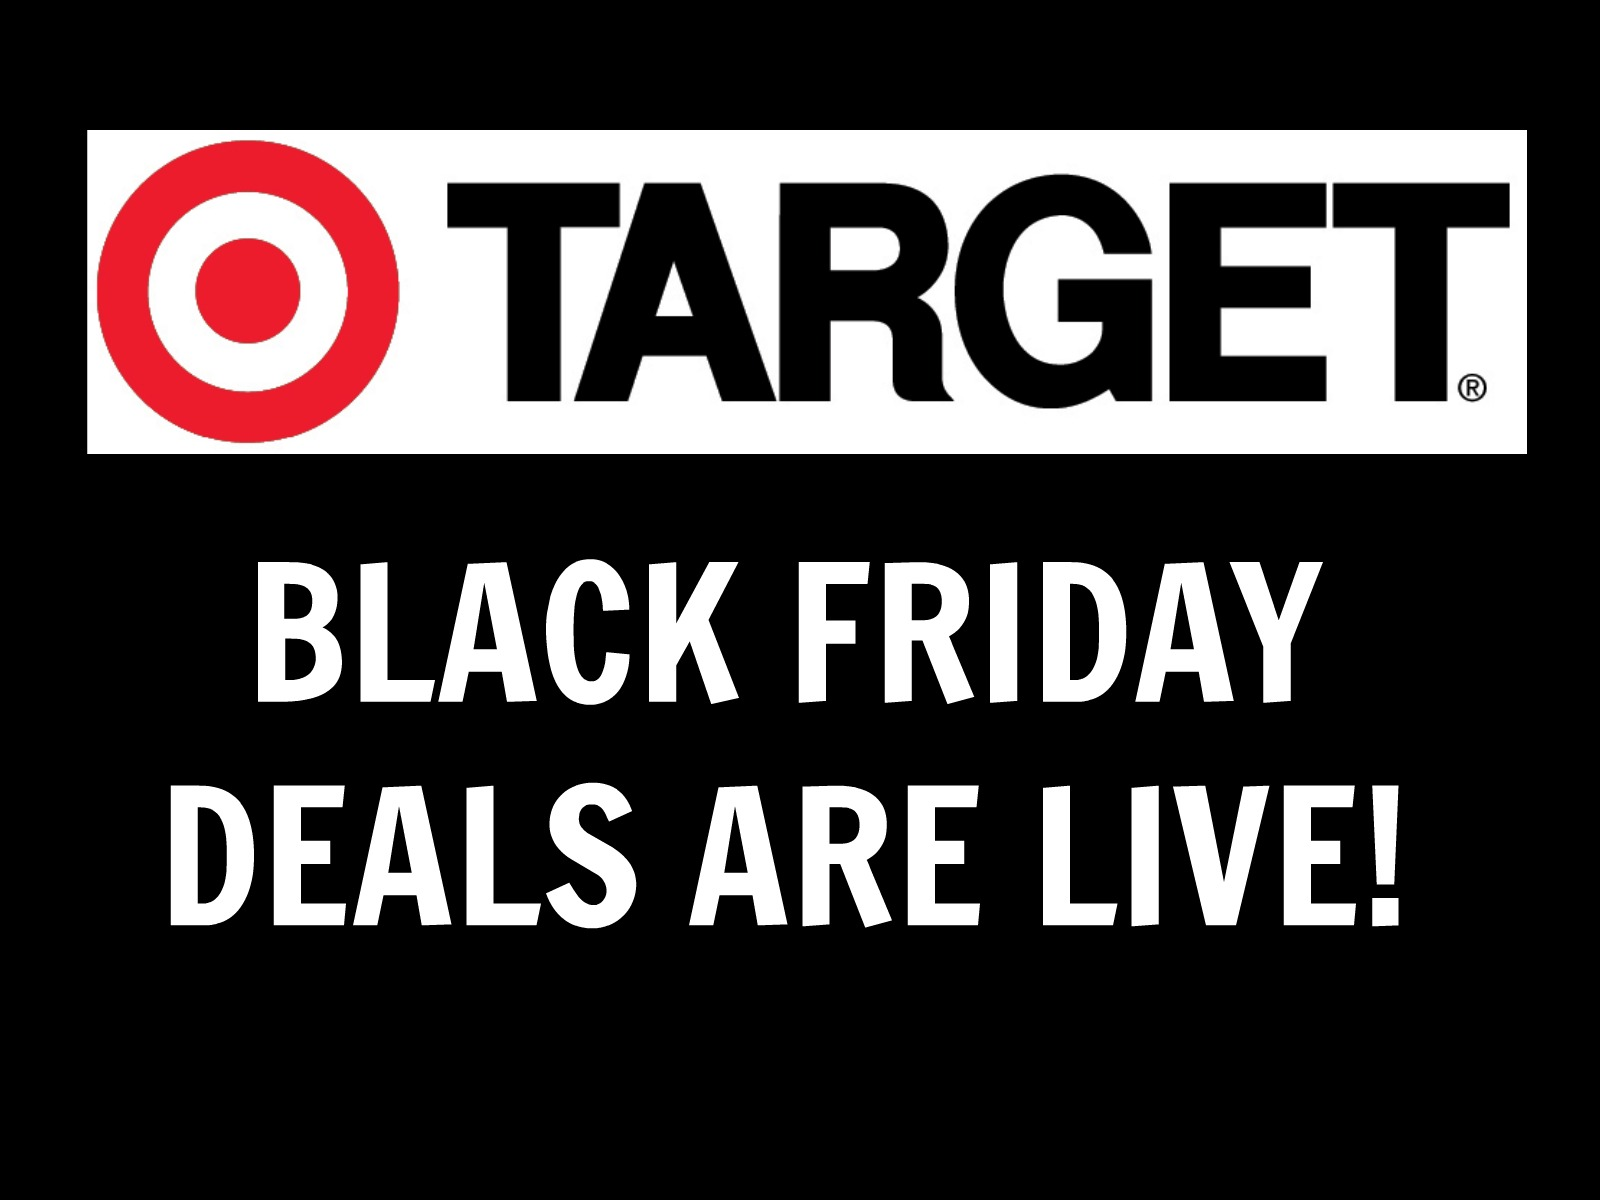 Target REDcard Black Friday Perks. Starting in , customers with a Target REDcard had access to 20 Black Friday deals a few hours before everyone else. REDcard holders also received free shipping and an additional 5% off their purchases online and in-store/5().